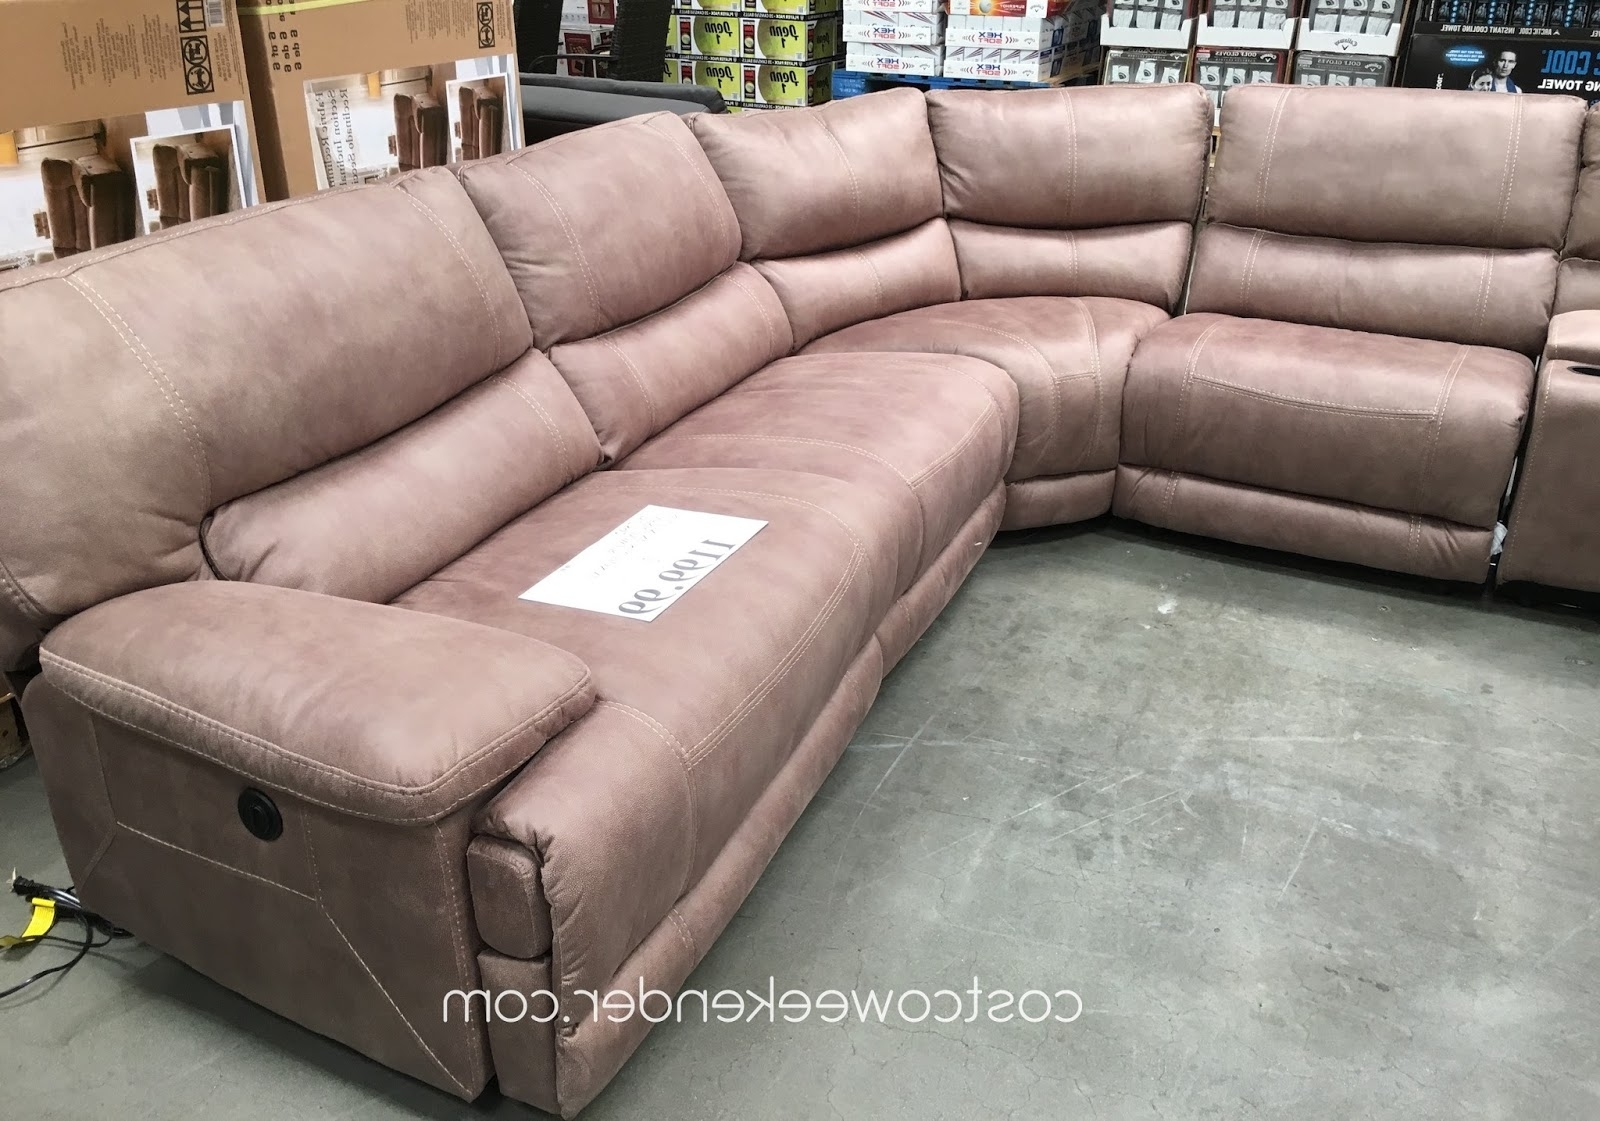 Costco Sectional Sofas – Home Design Ideas And Pictures Inside Best And Newest Sectional Sofas At Costco (View 19 of 20)